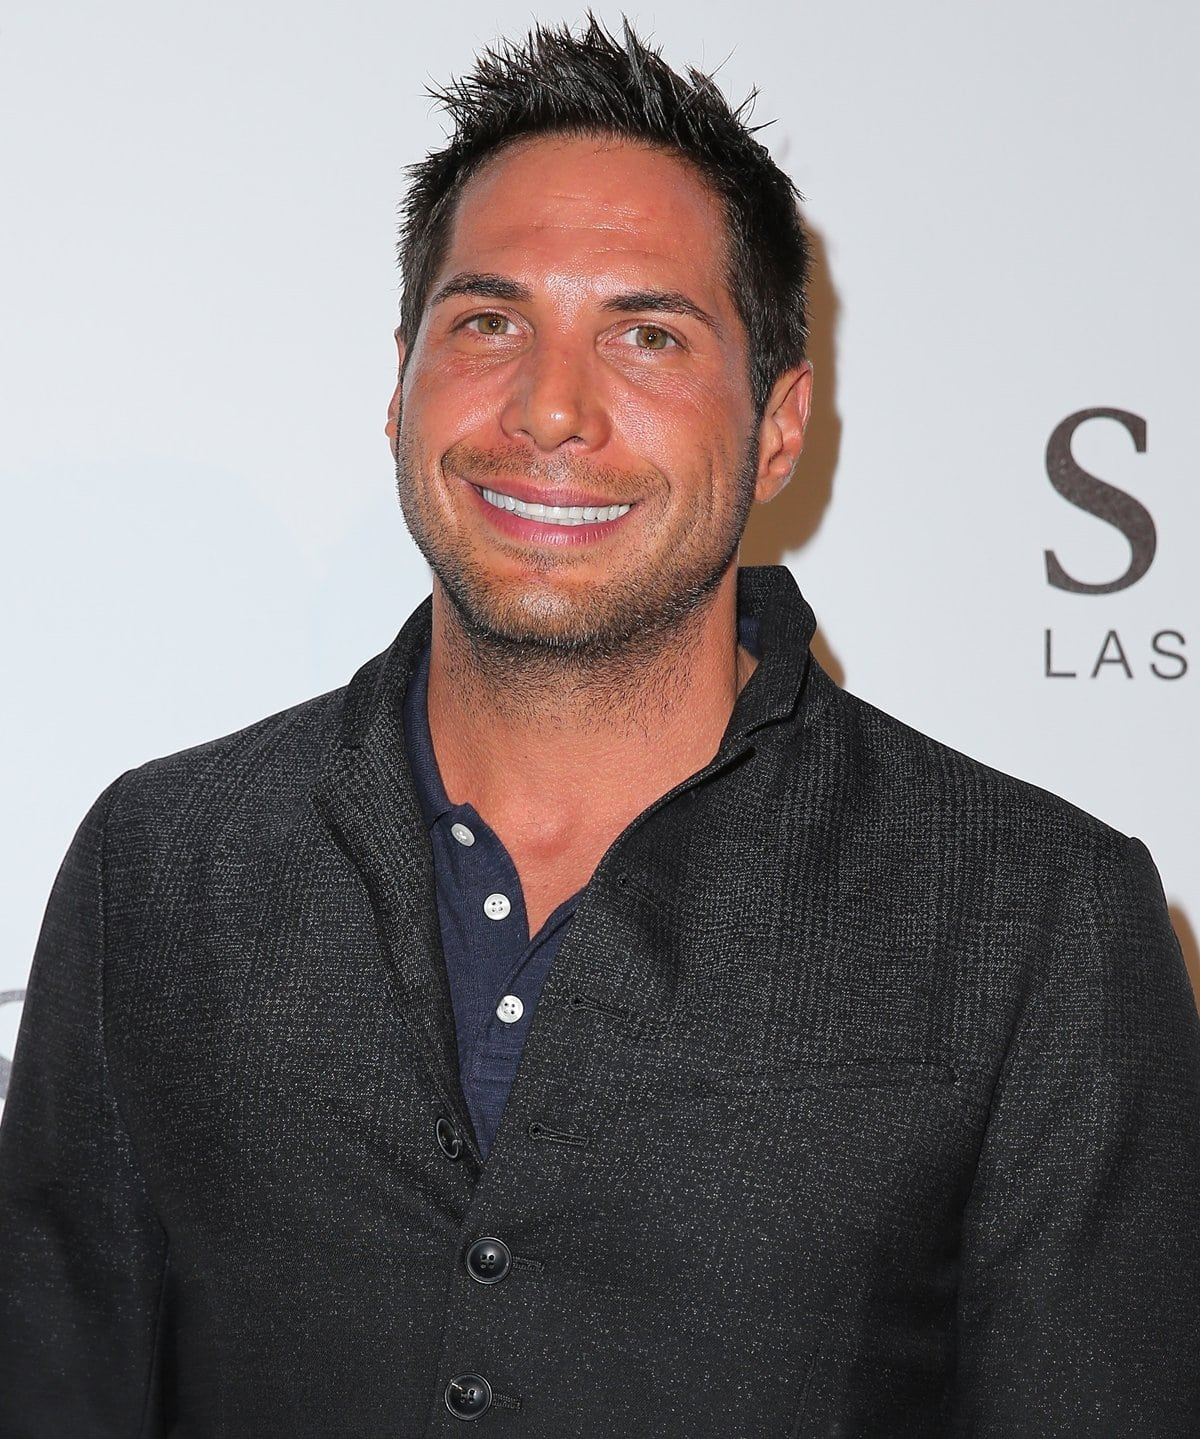 Businessman and film producer Joe Francis is best known for launching the Girls Gone Wild entertainment brand